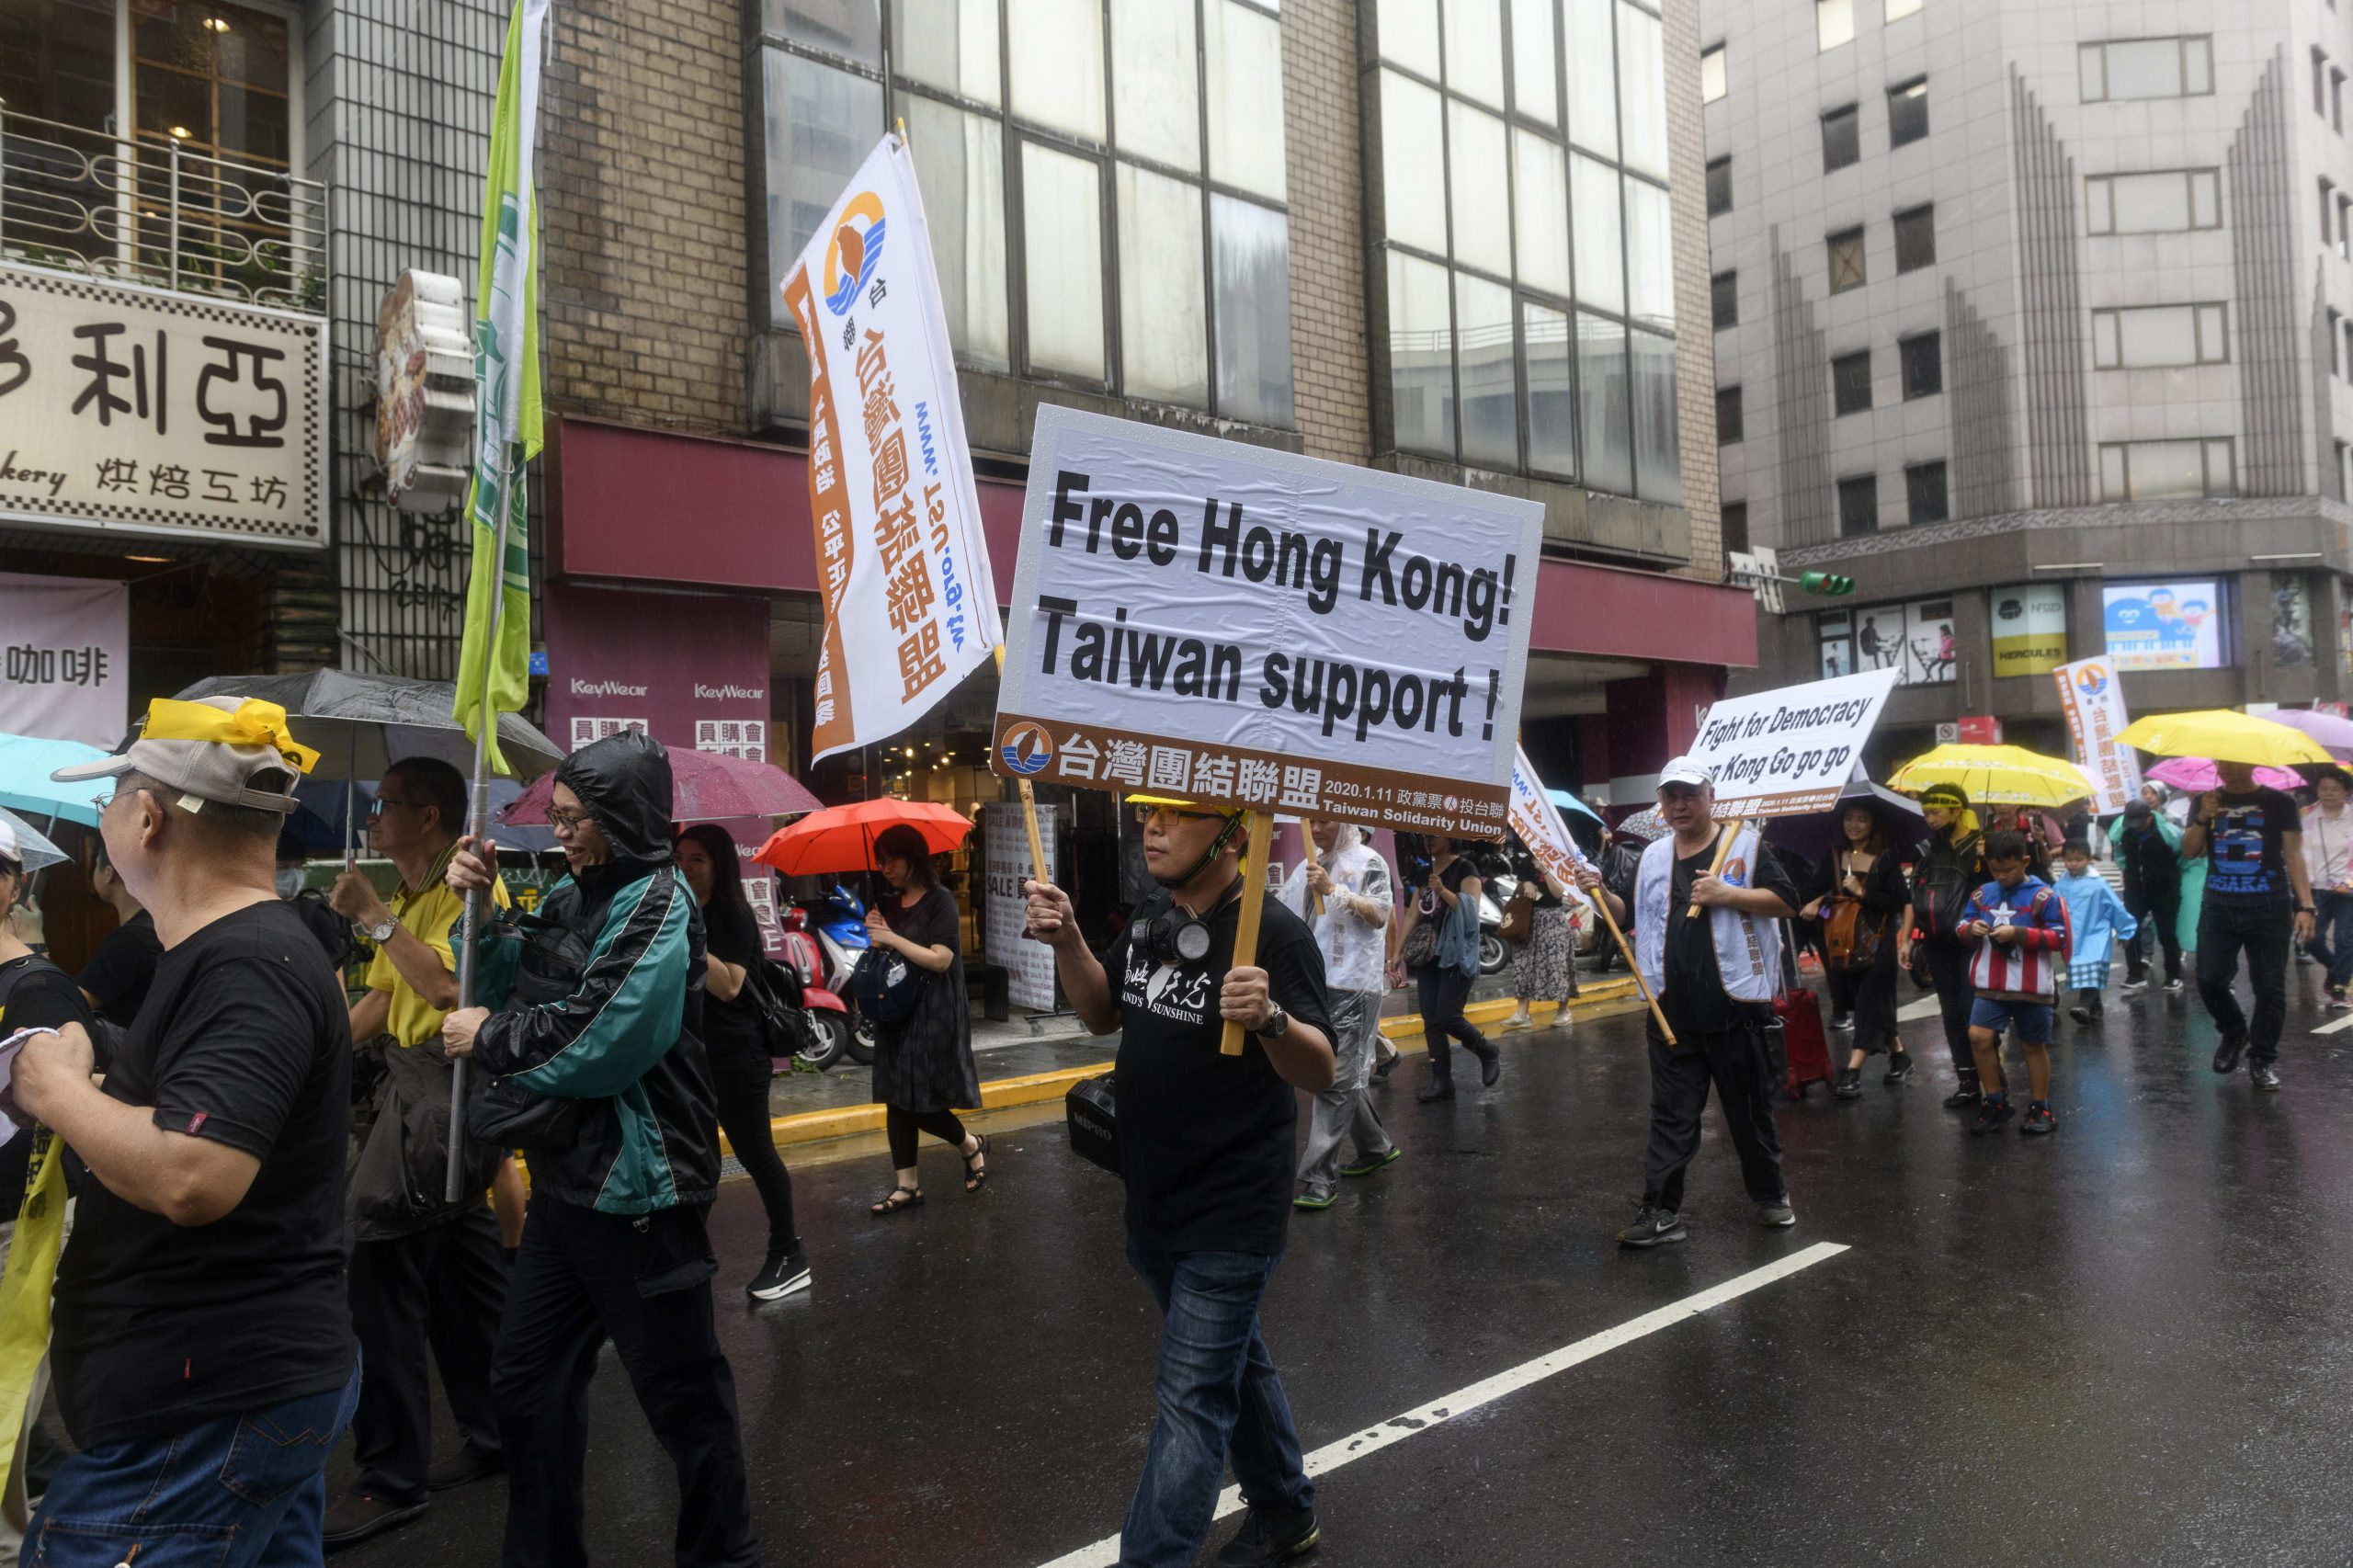 Taiwan heads to the polls as concerns over China mount and Hong Kong protests linger